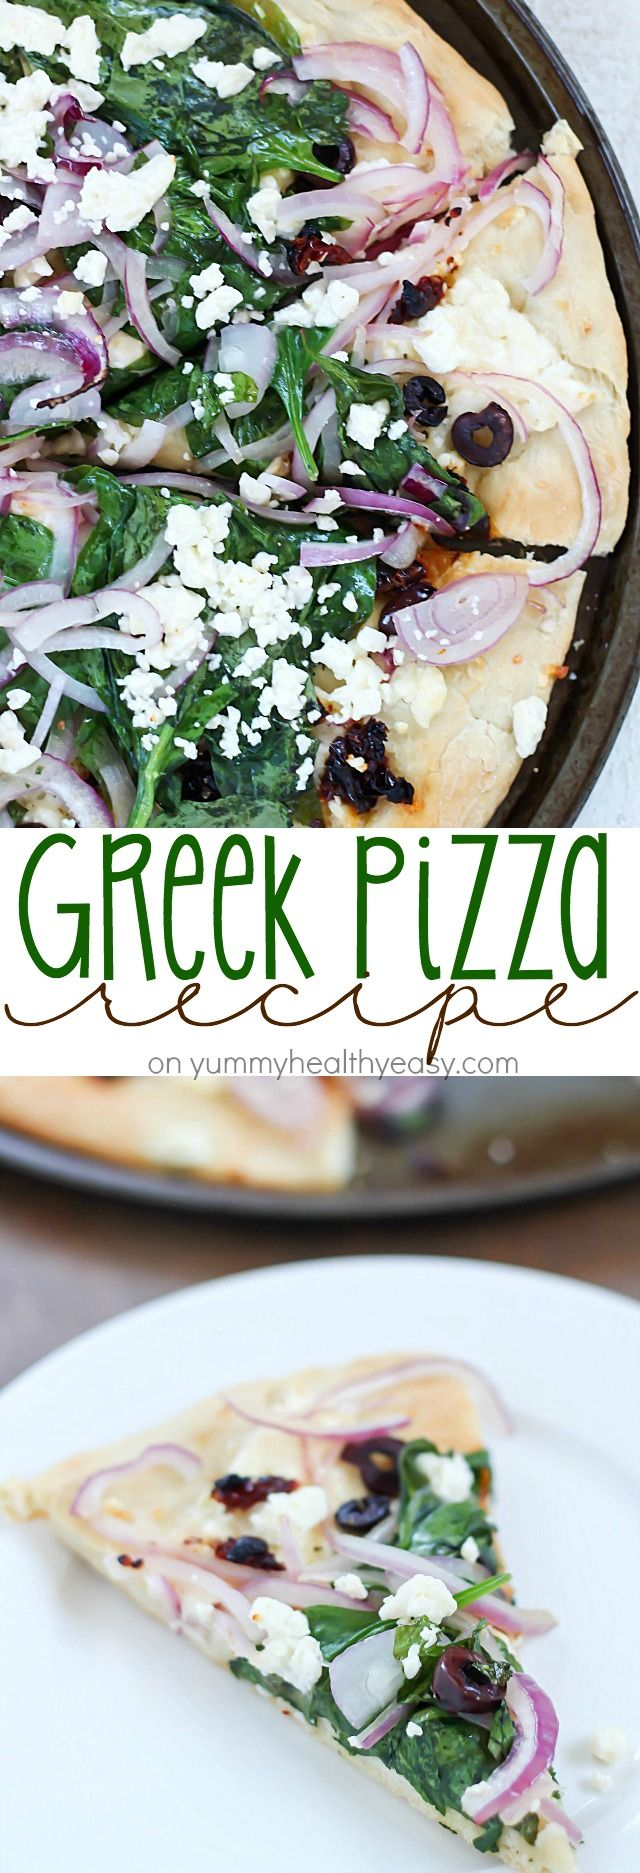 Easy Greek Pizza Recipe with a mayo & garlic spread and topped with feta, red onion, spinach, sun dried tomatoes and kalamata olives. Crazy delicious!